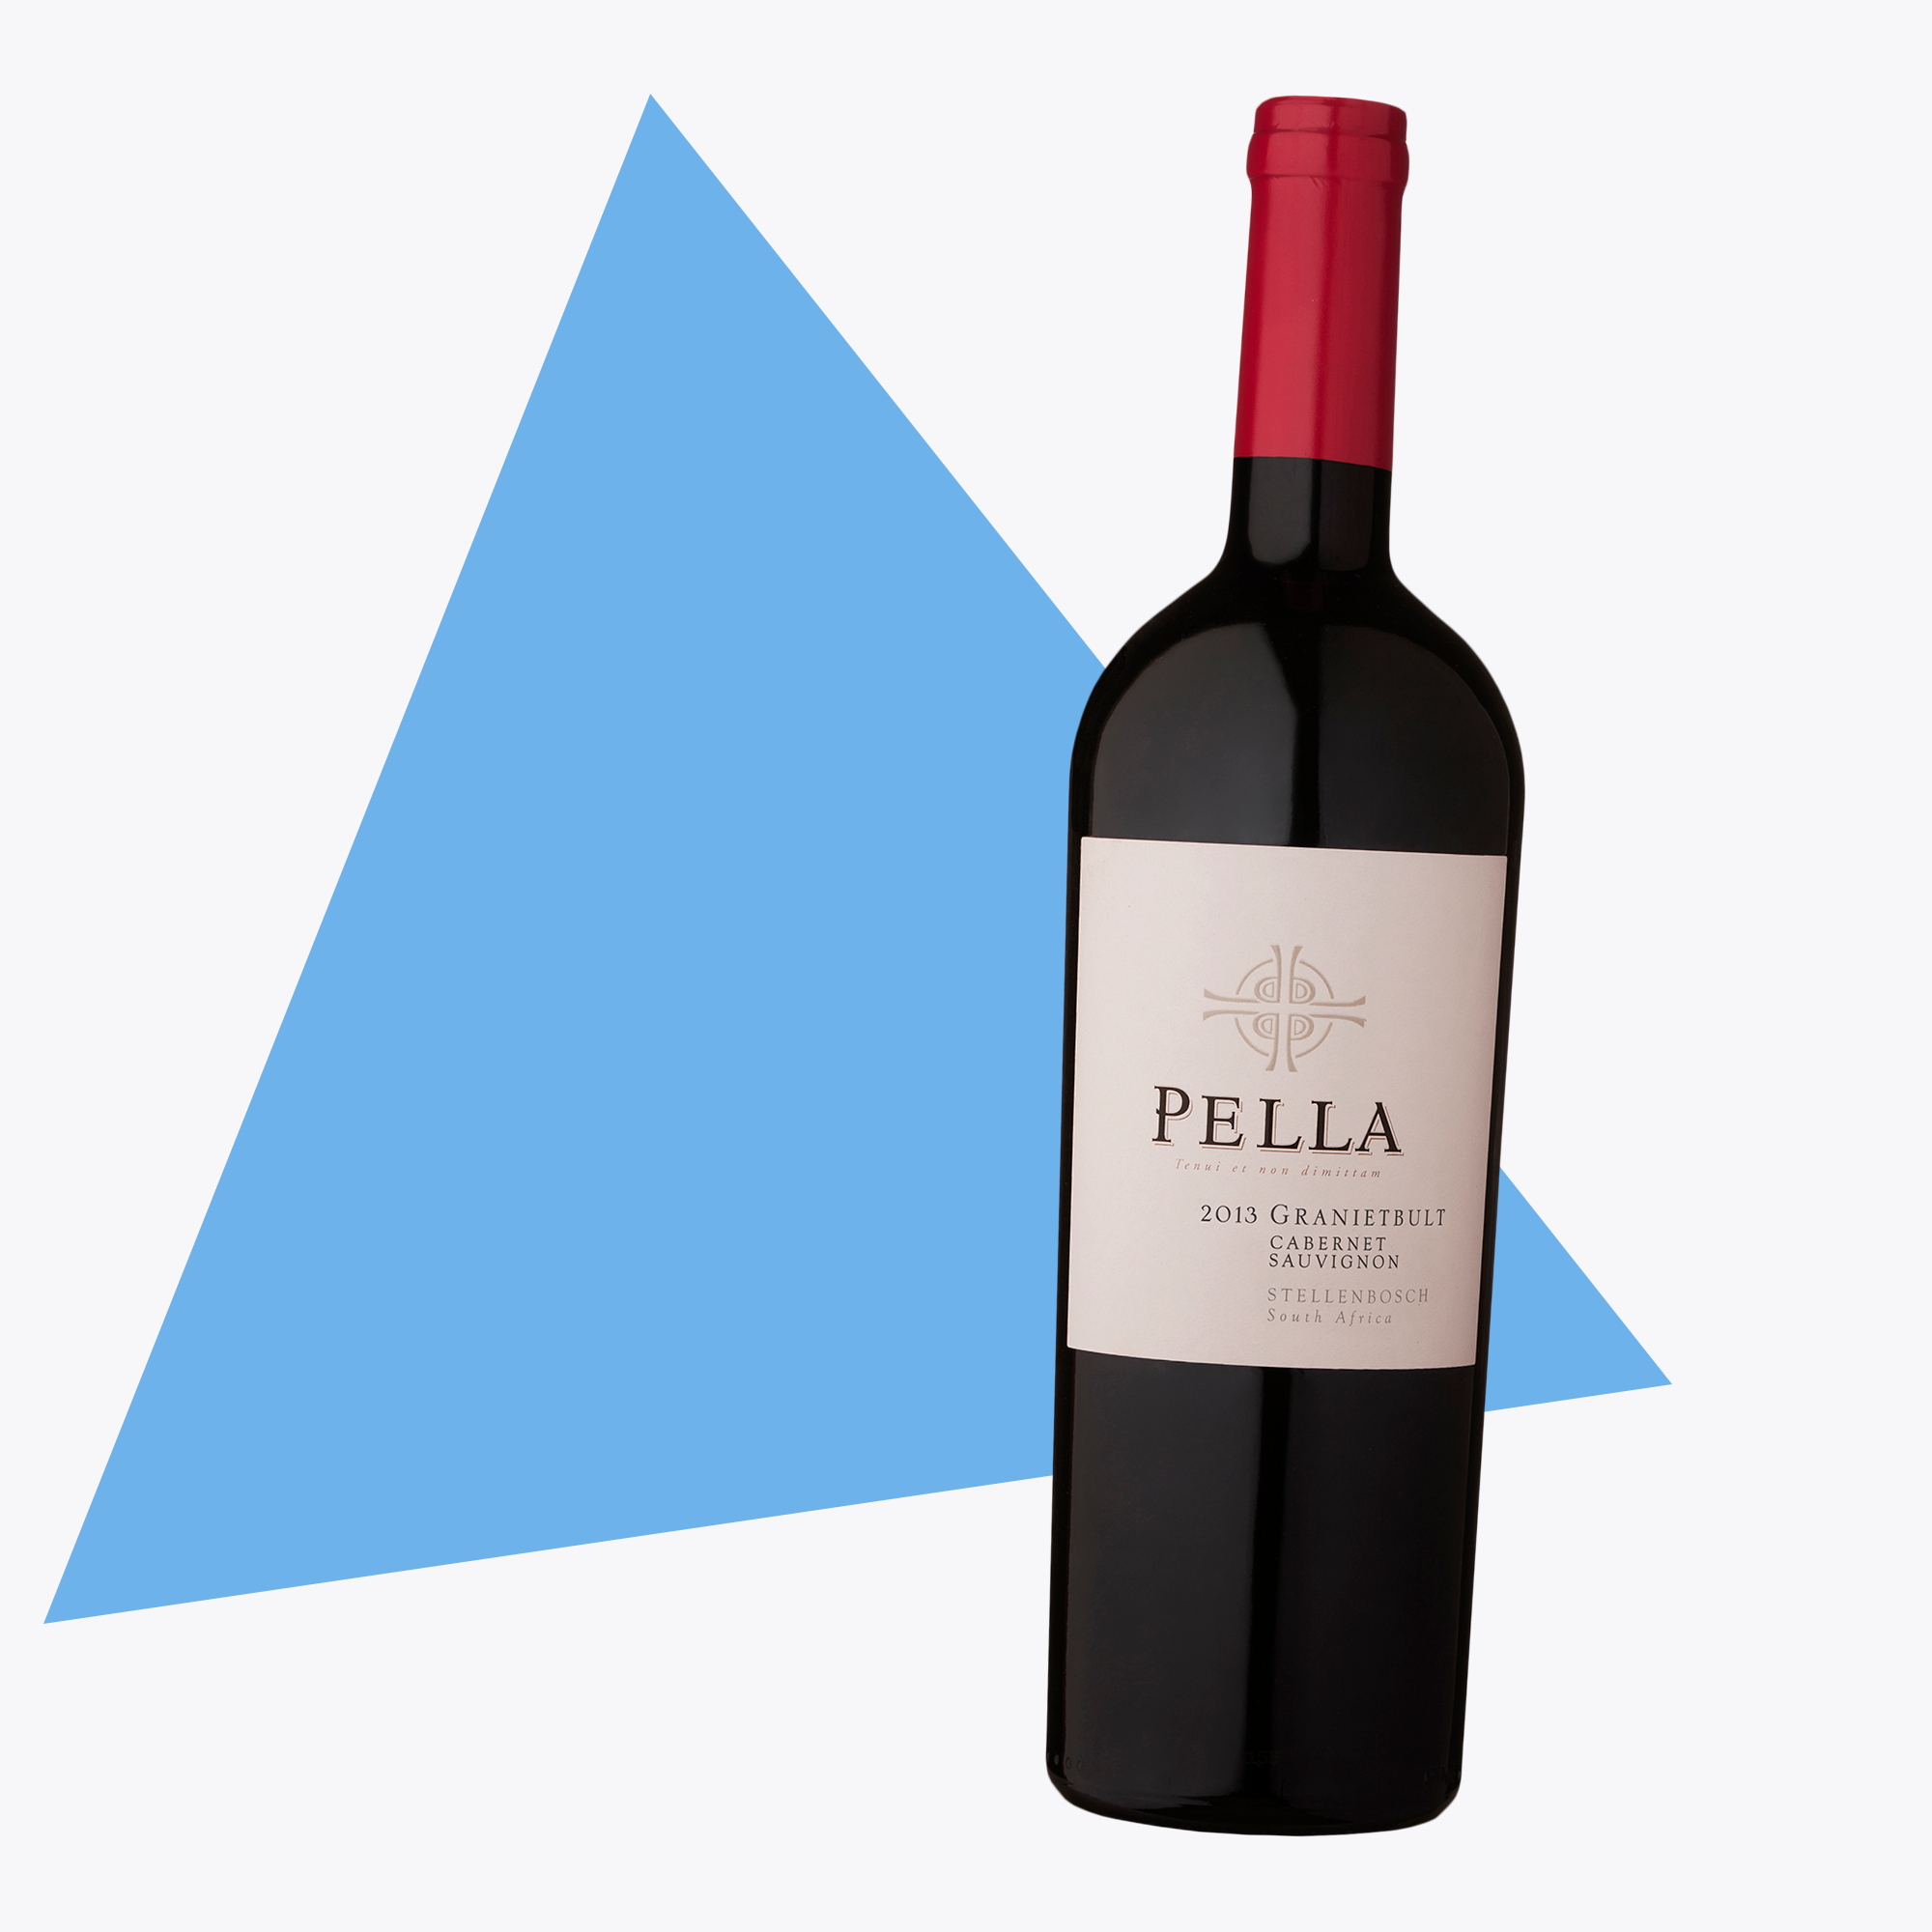 Pella Cabernet Sauvignon By Super Single Vineyards Stellenbosch South Africa